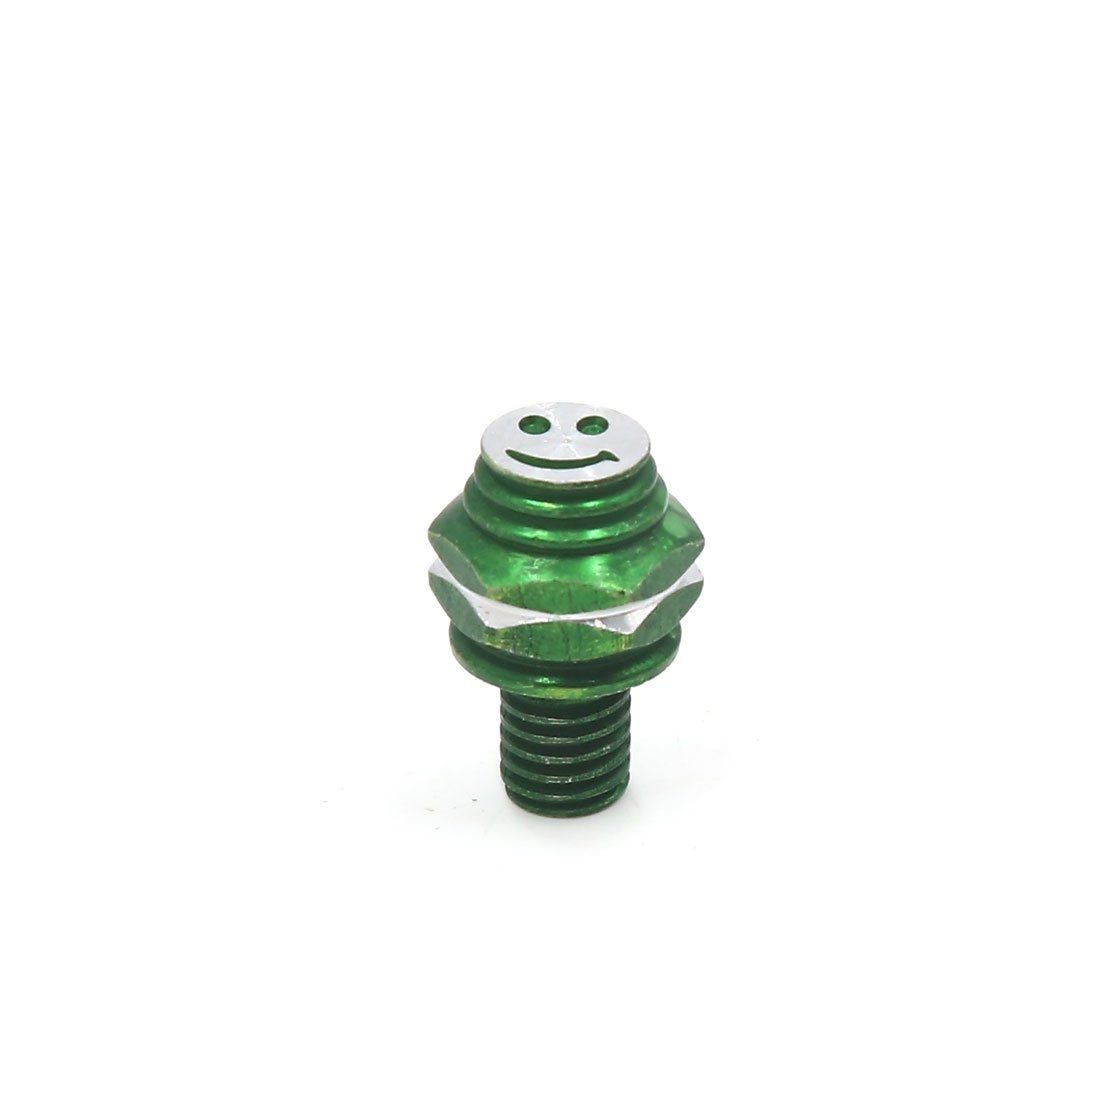 uxcell 8pcs M8 x 10mm Smiling Face Pattern Motorcycle Hex Screws Bolts Fasteners Green